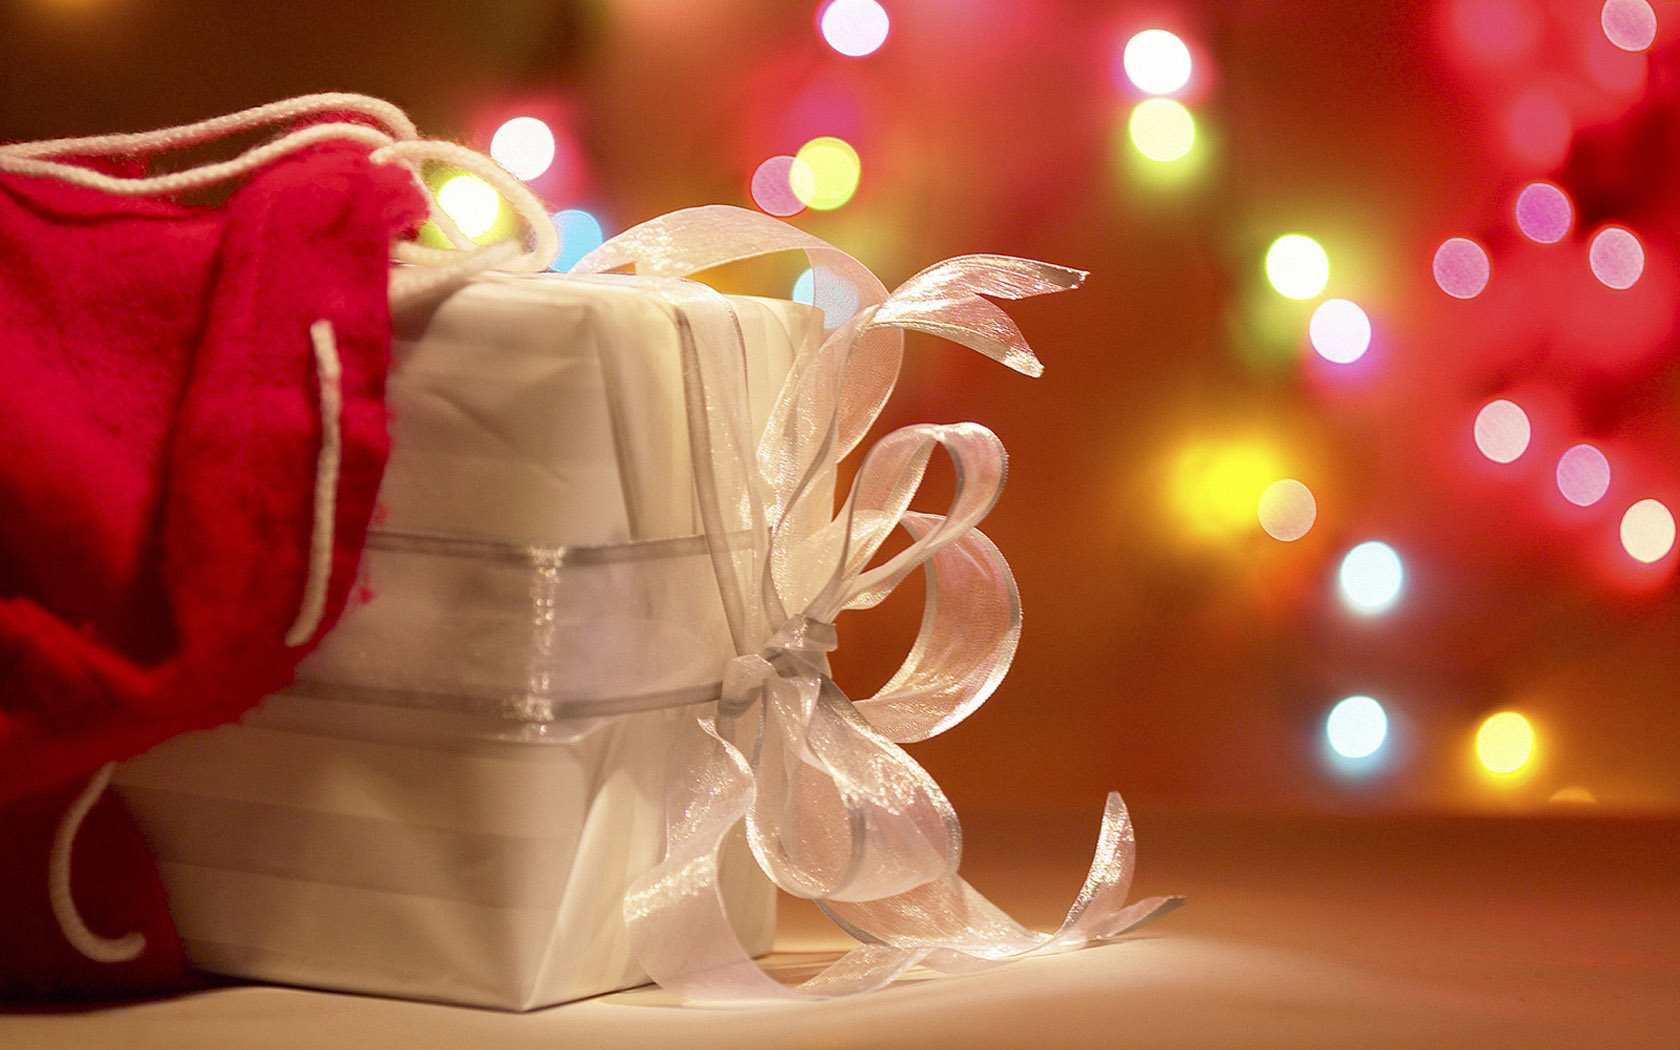 1500x500 Christmas Gifts Twitter Header Photo